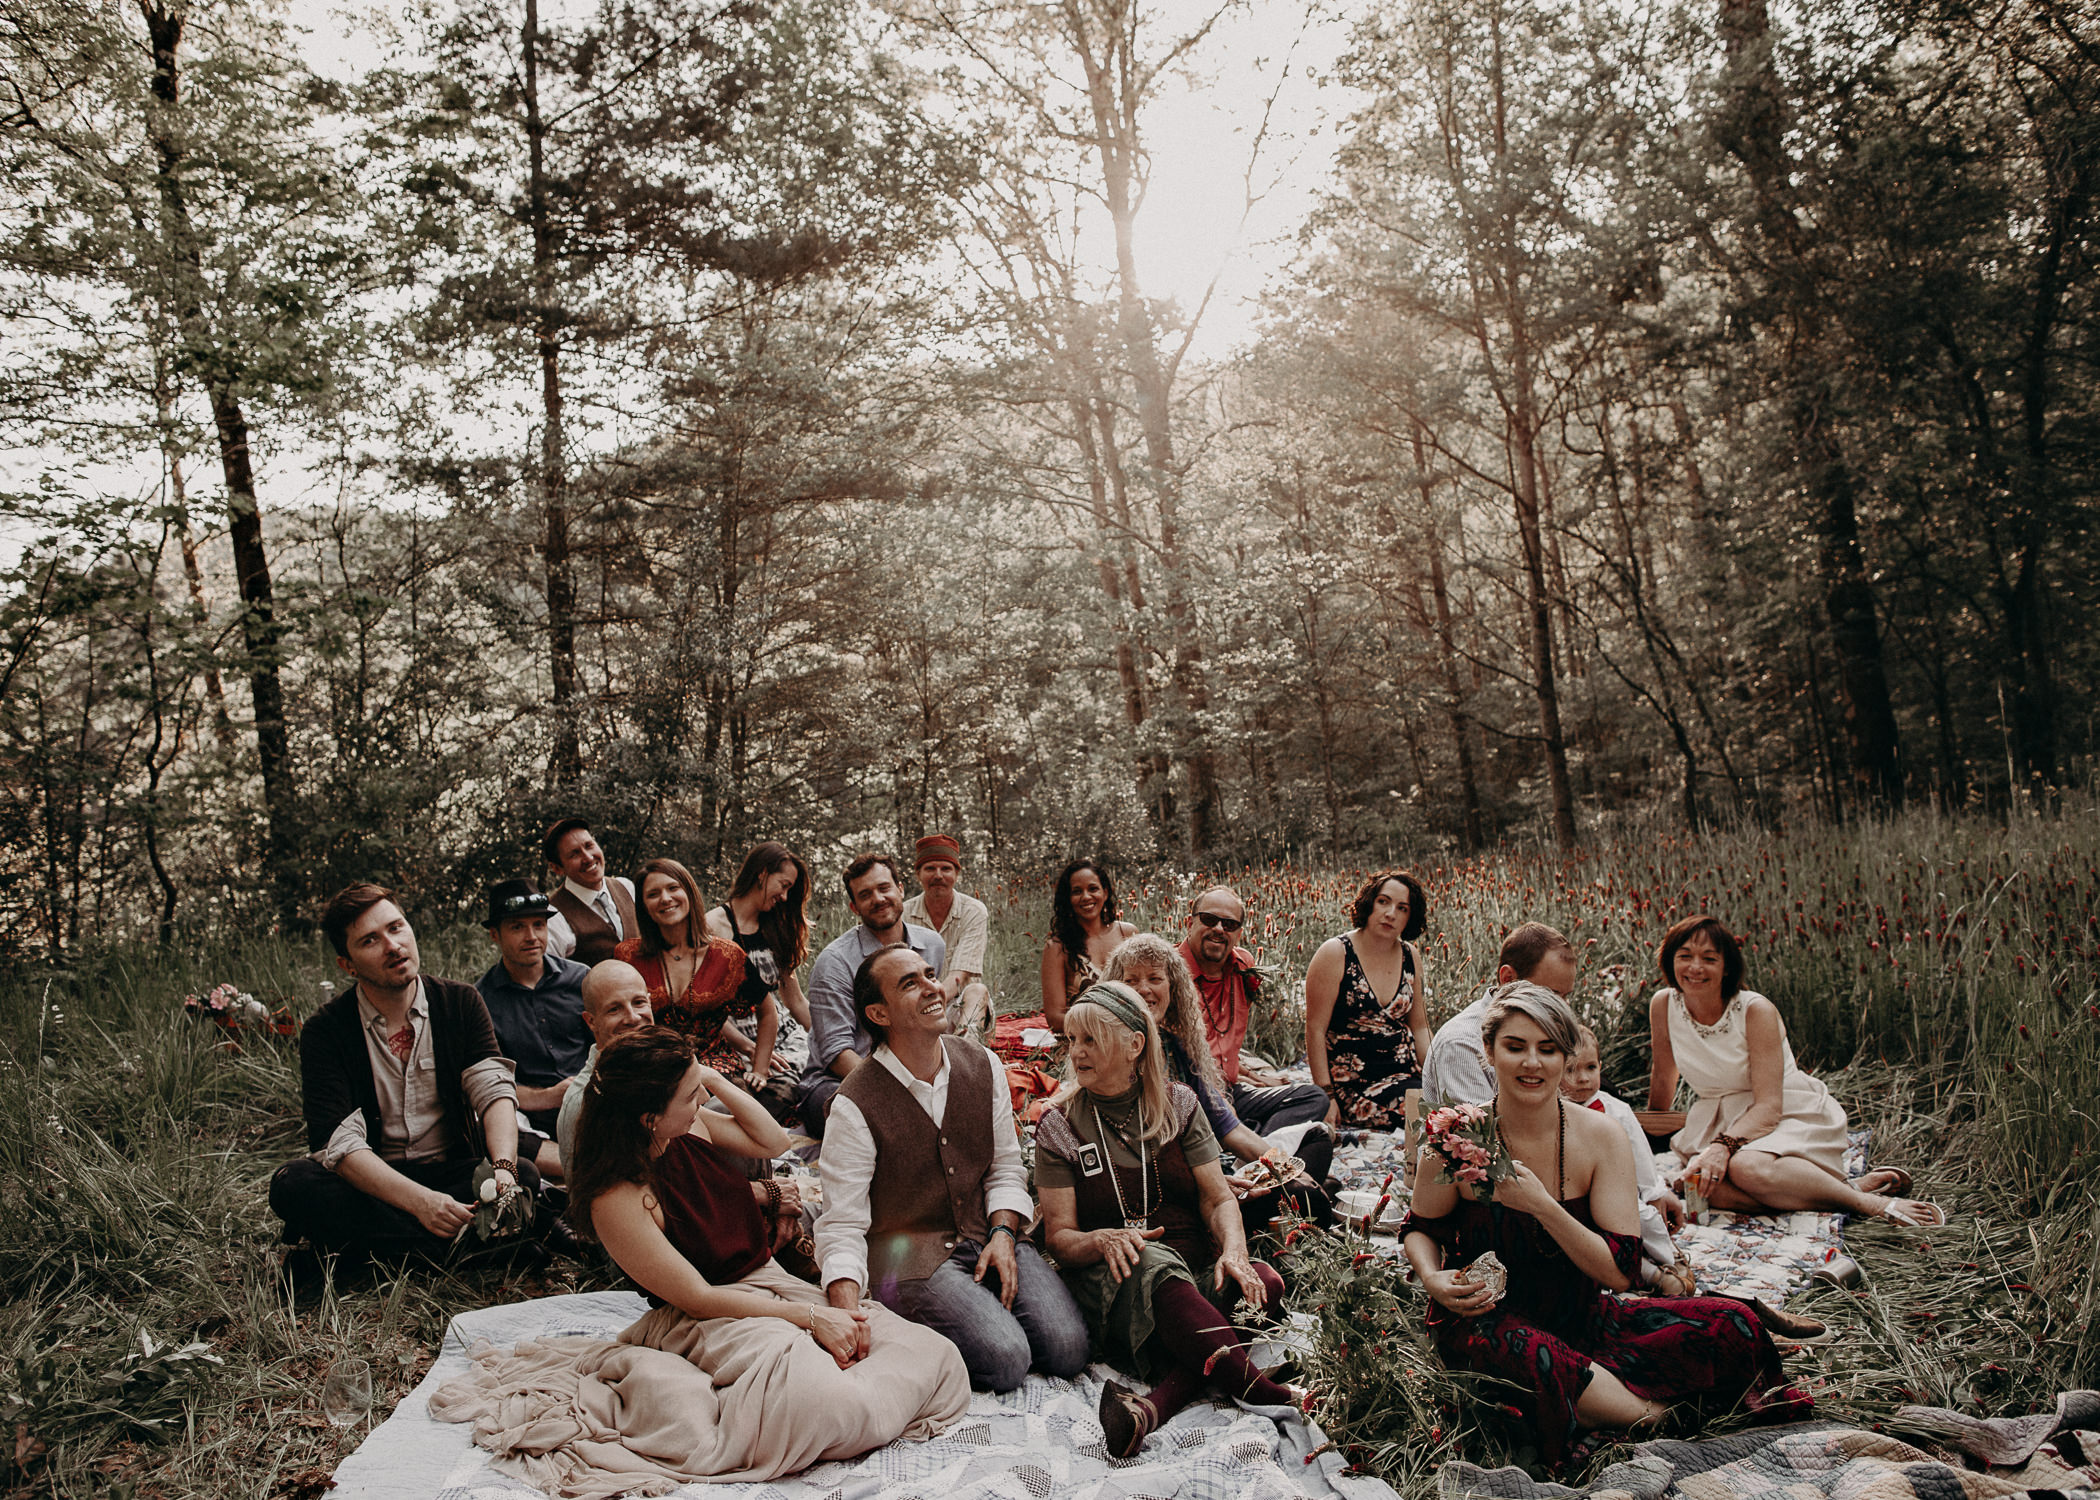 75- Forest wedding boho enchanched fairytale wedding atlanta - ga , intimate, elopement, nature, greens, good vibes. Aline Marin Photography .jpg